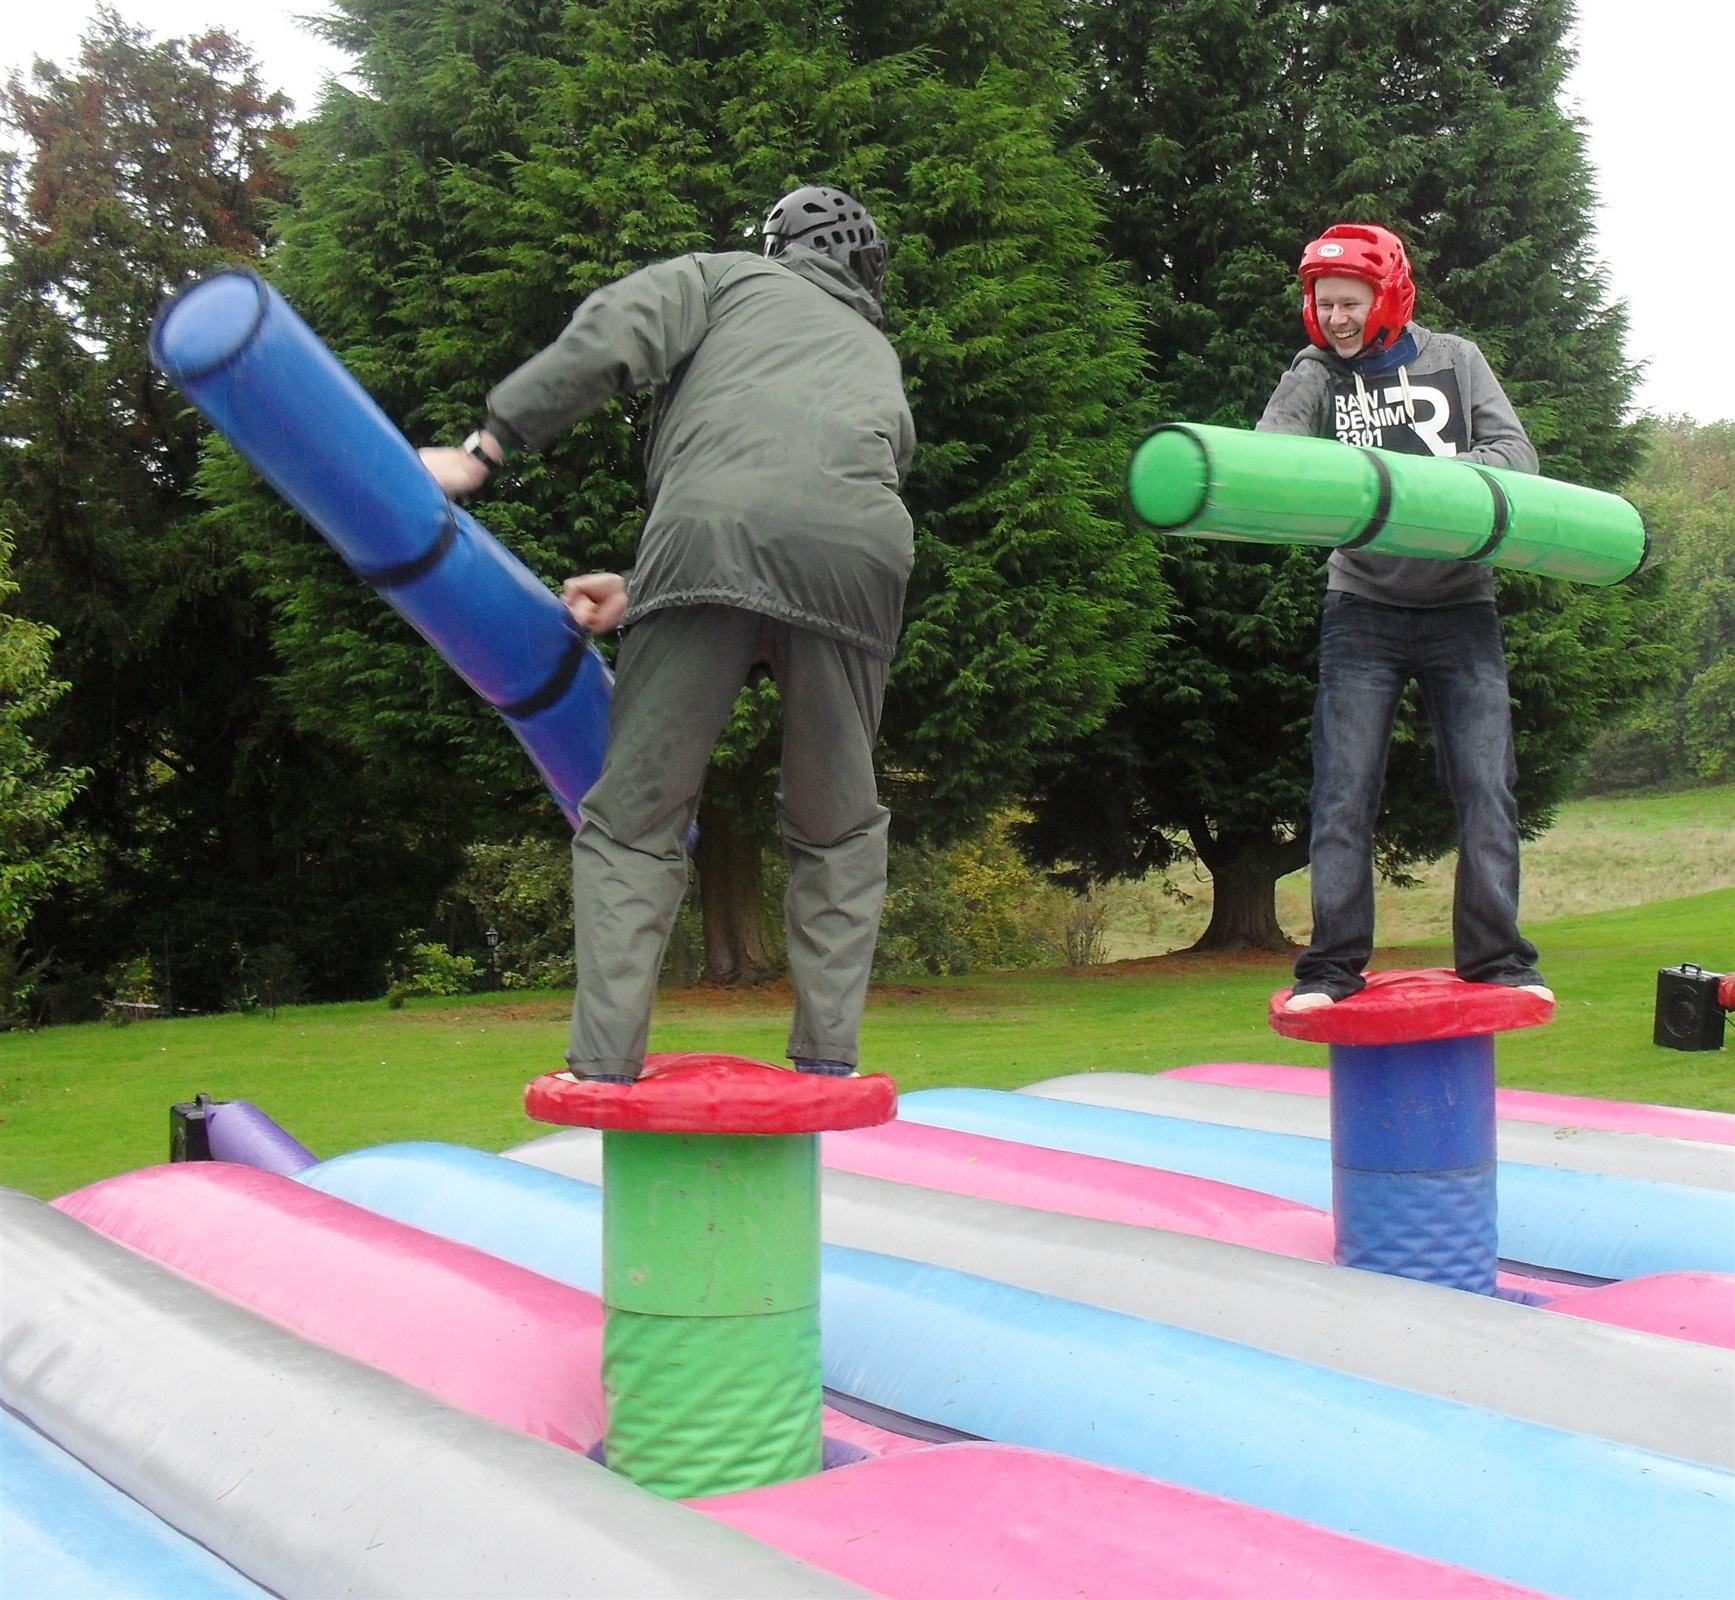 Trampoline Party Glasgow: Inflatable Hire In Fife, Edinburgh And Glasgow